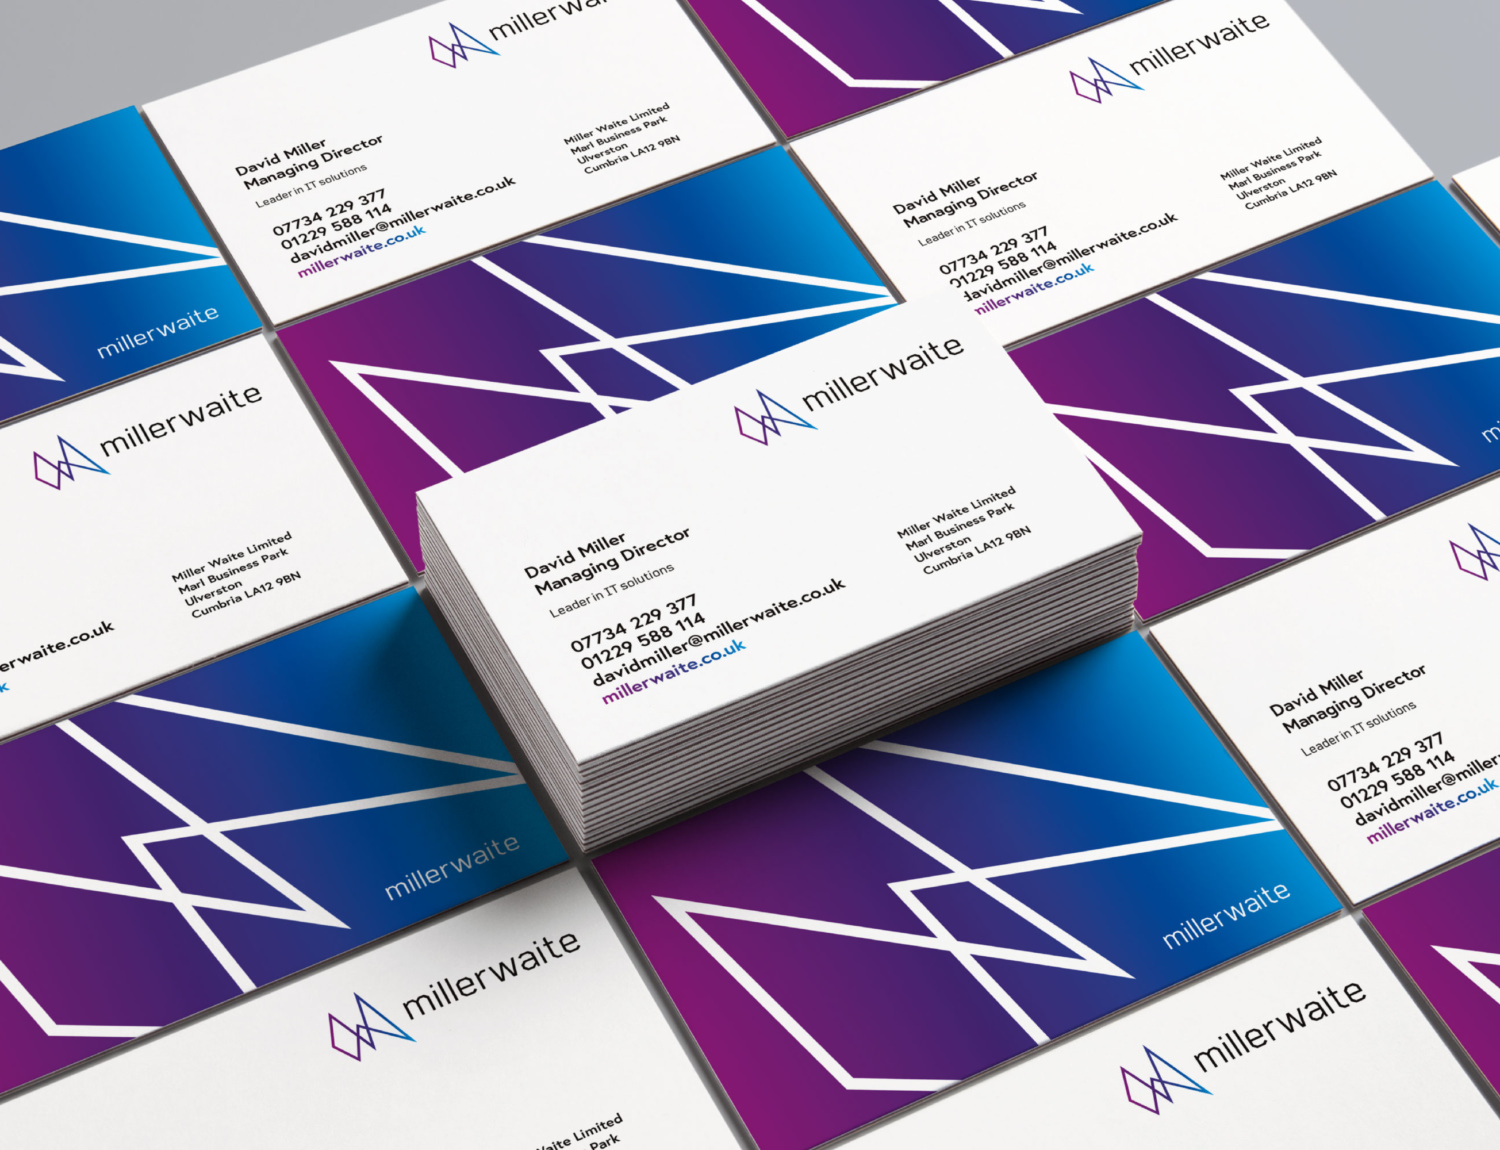 millerwaite-business-cards